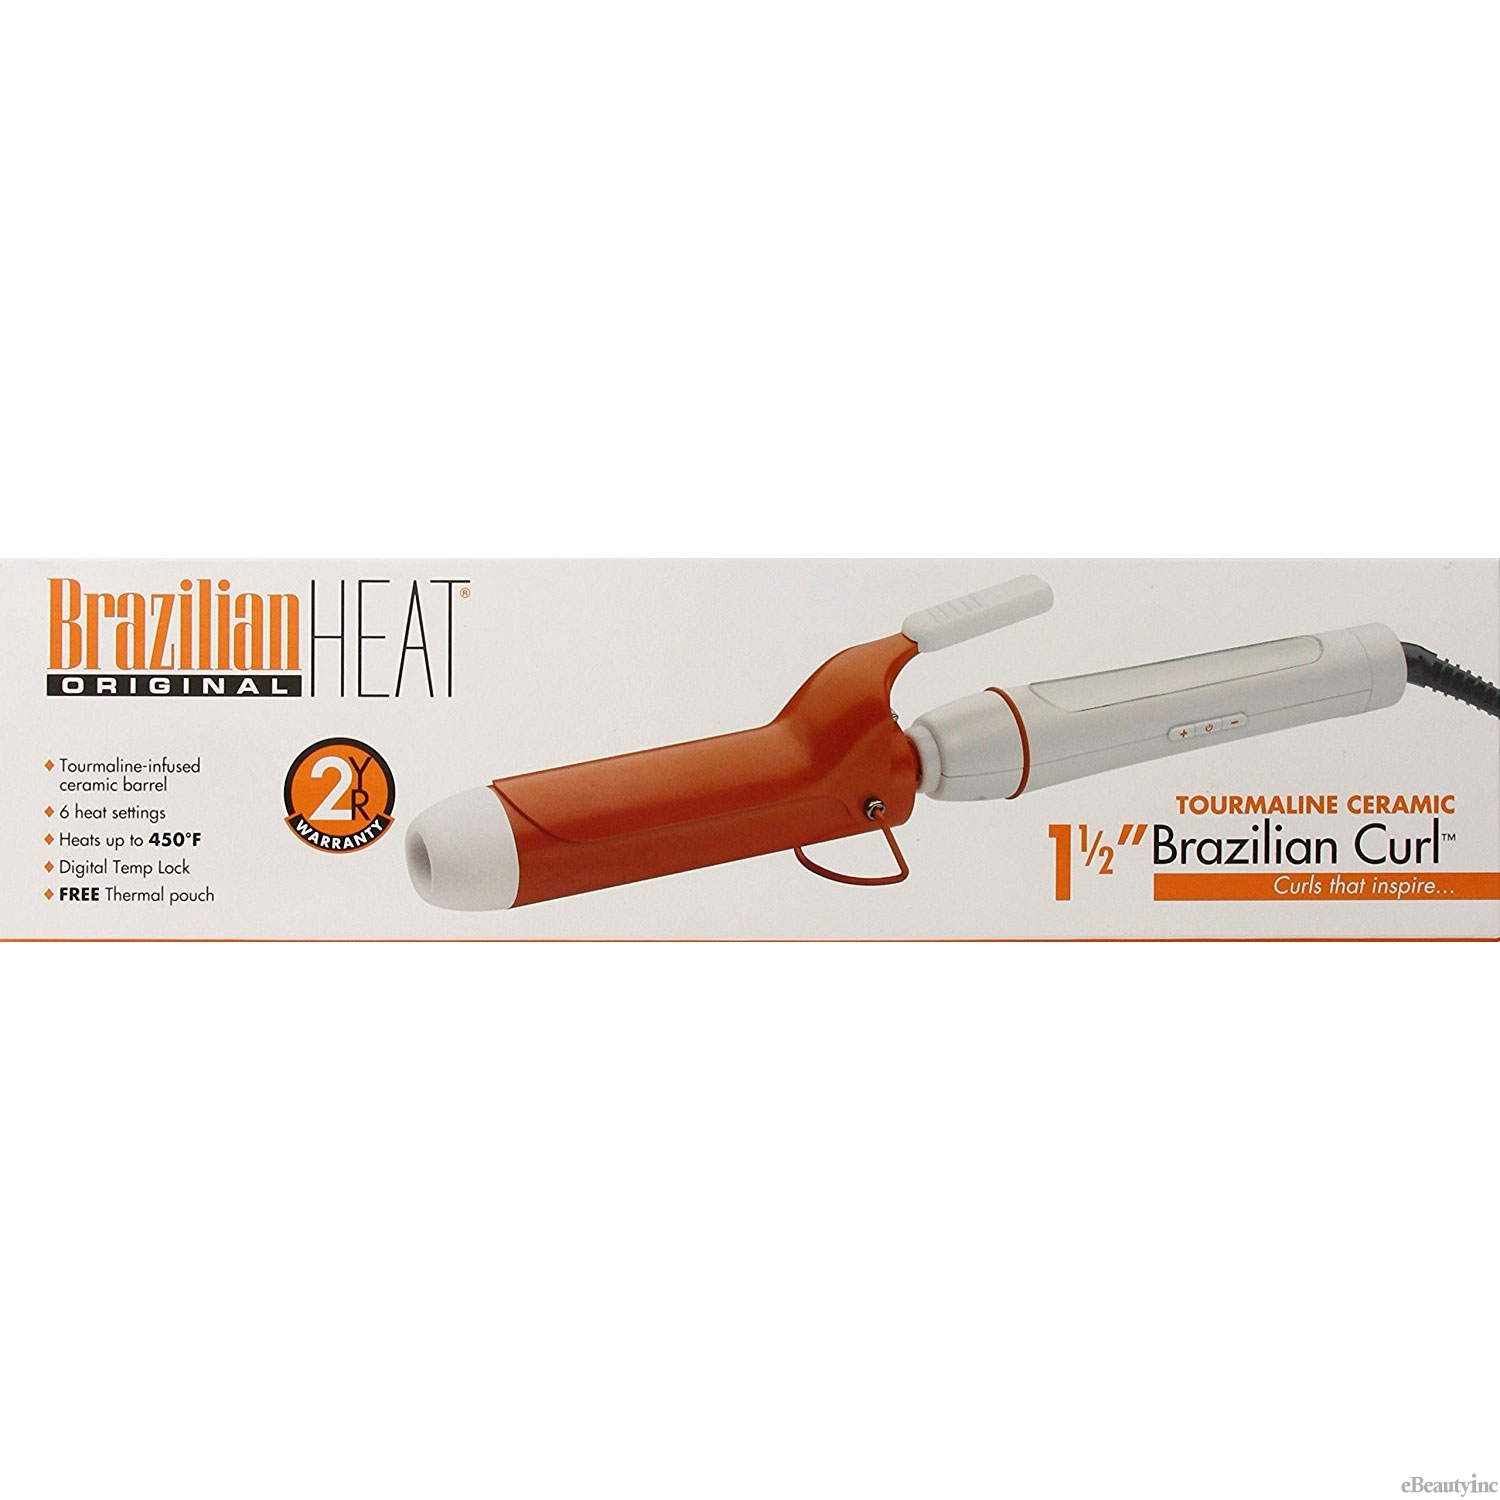 "Image of Belson Brazilian Heat Tourmaline Ceramic 1-1/2"" Spring Curling Iron"